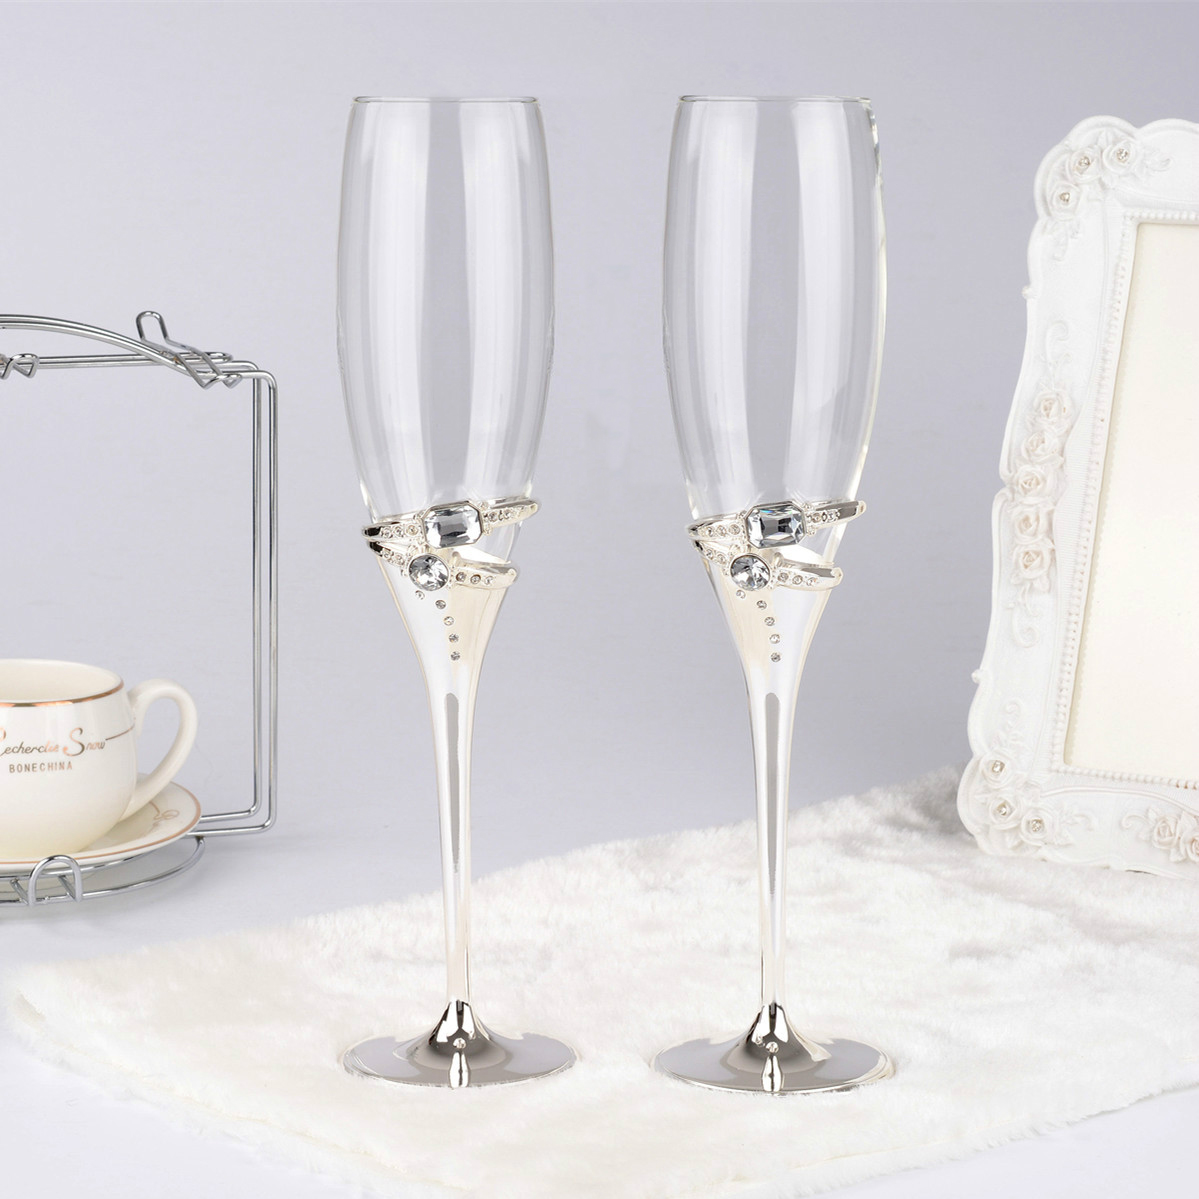 1 pair silver color wedding champagne red wine glasses with crystal 2 rings champagne glass